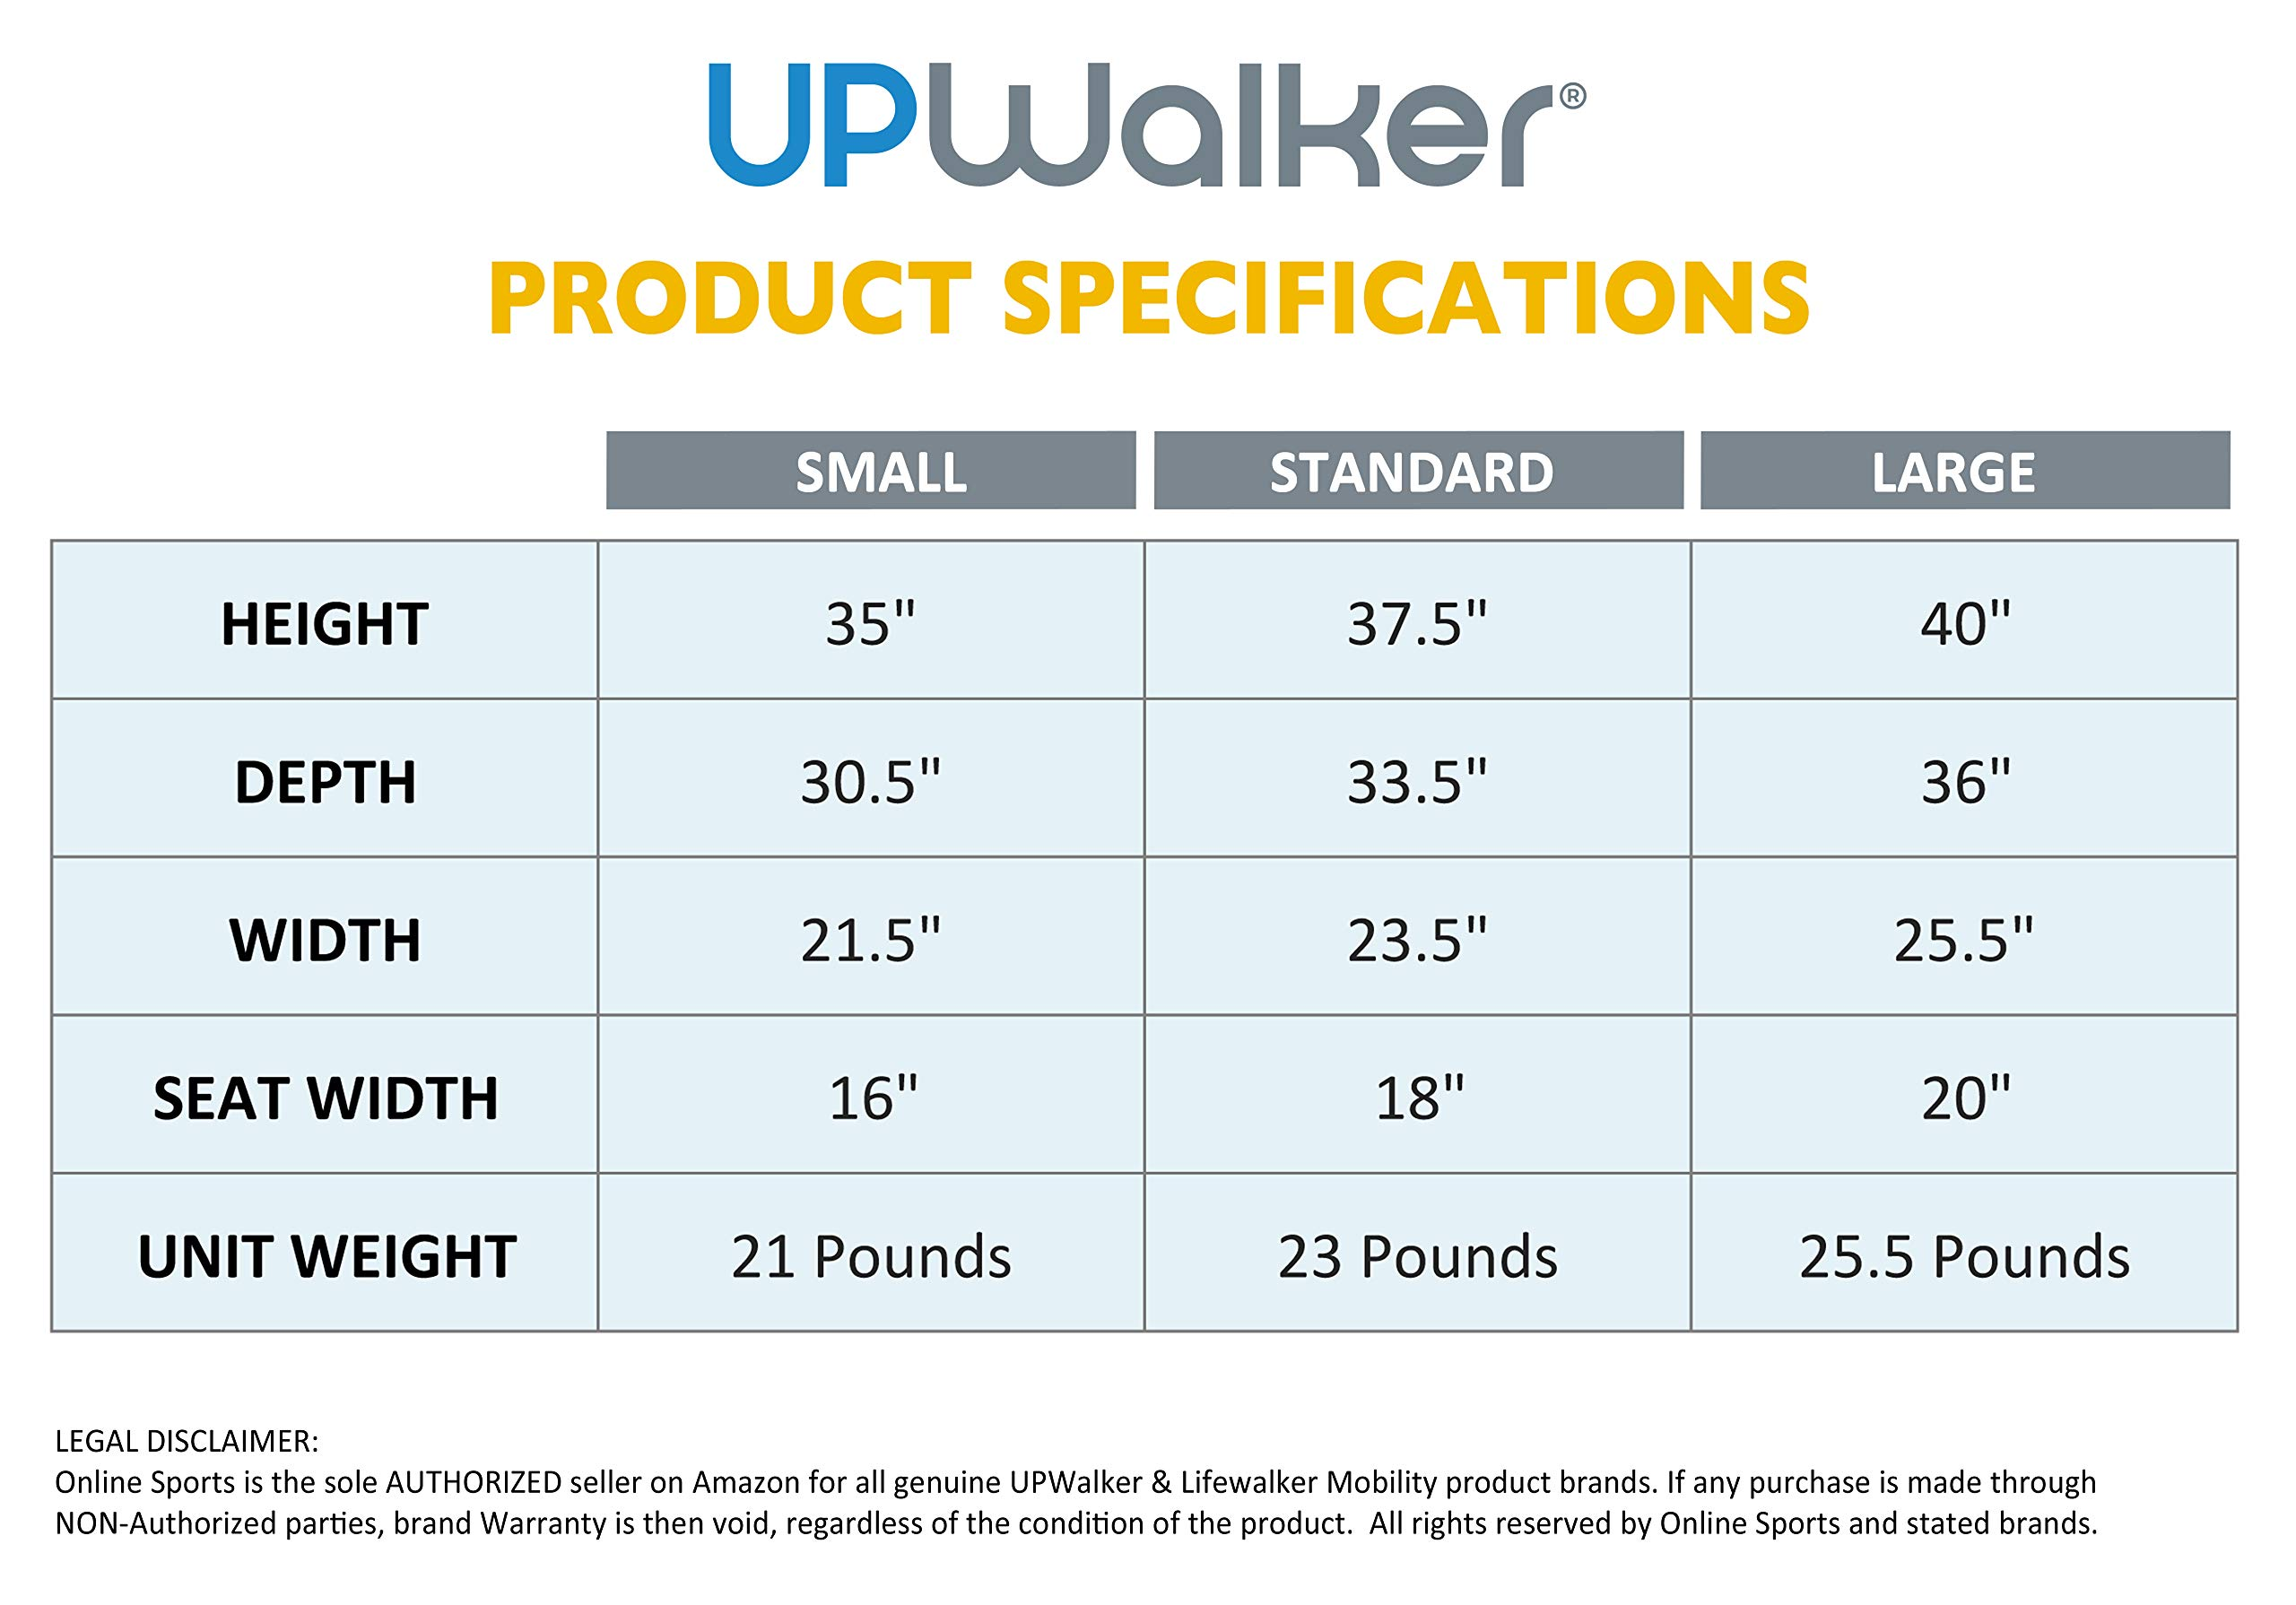 UPWalker Original Upright Walker - Size Large (Stand Up Rolling Mobility Walking Aid with Seat) by LifeWalker